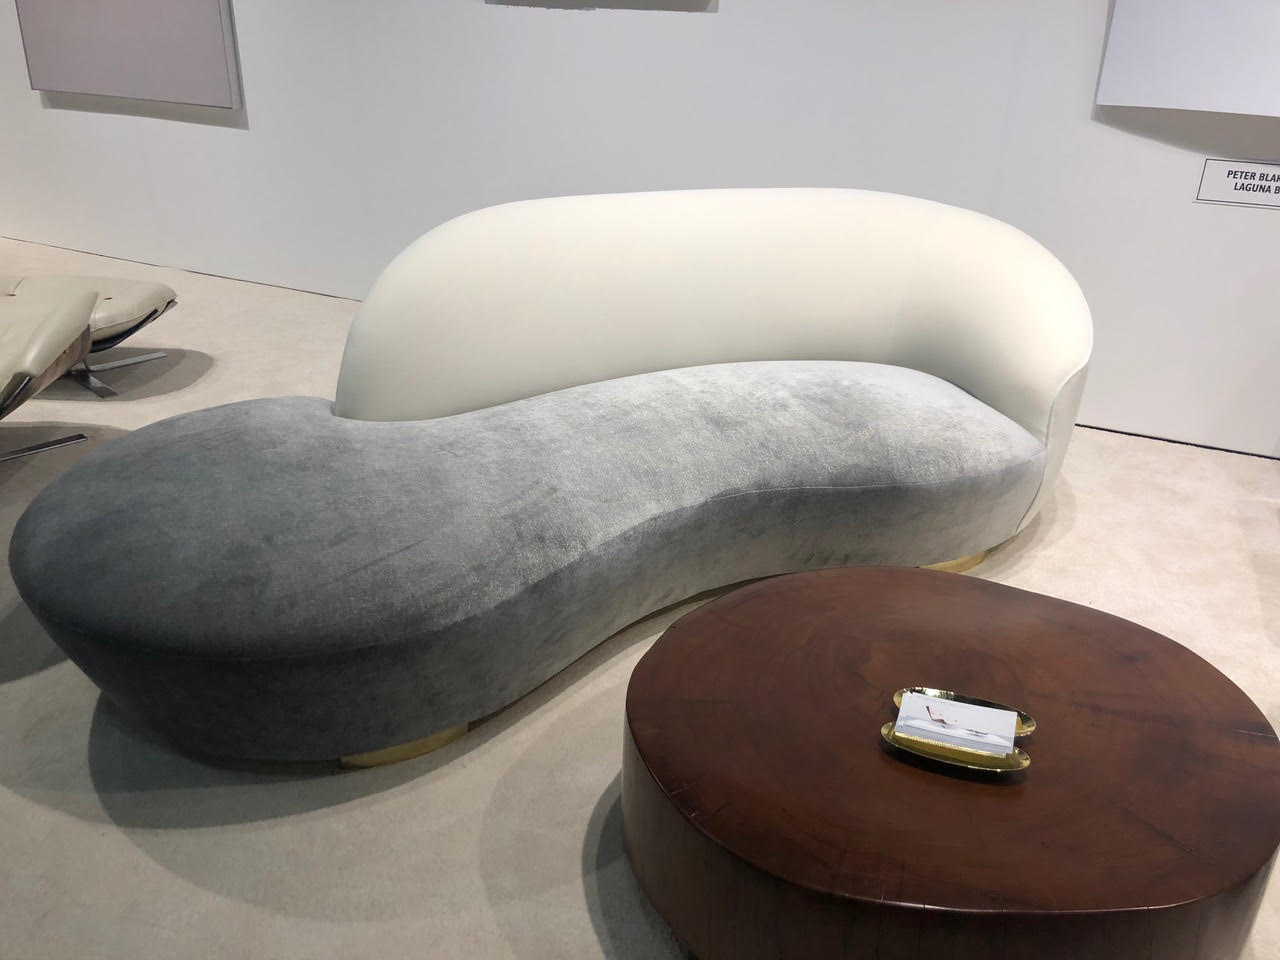 A Luxurious Interior Design Weekend at The Modernist Show image 006